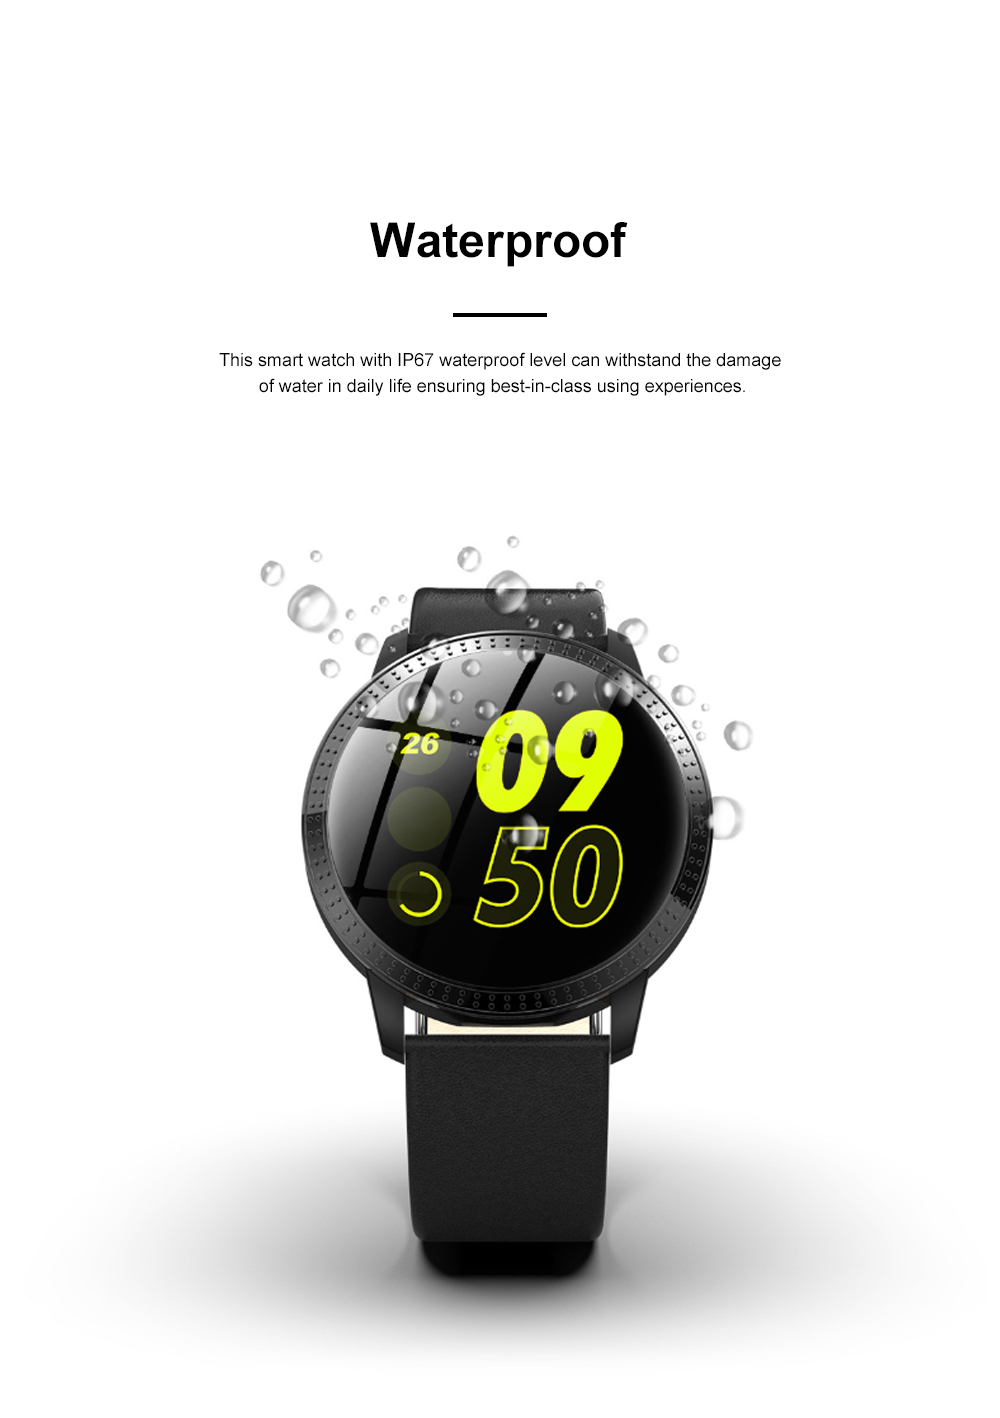 Multifunctional Waterproof Large Round Screen Intelligent Smart Watch with Leather Strap Bluetooth Photographing 7